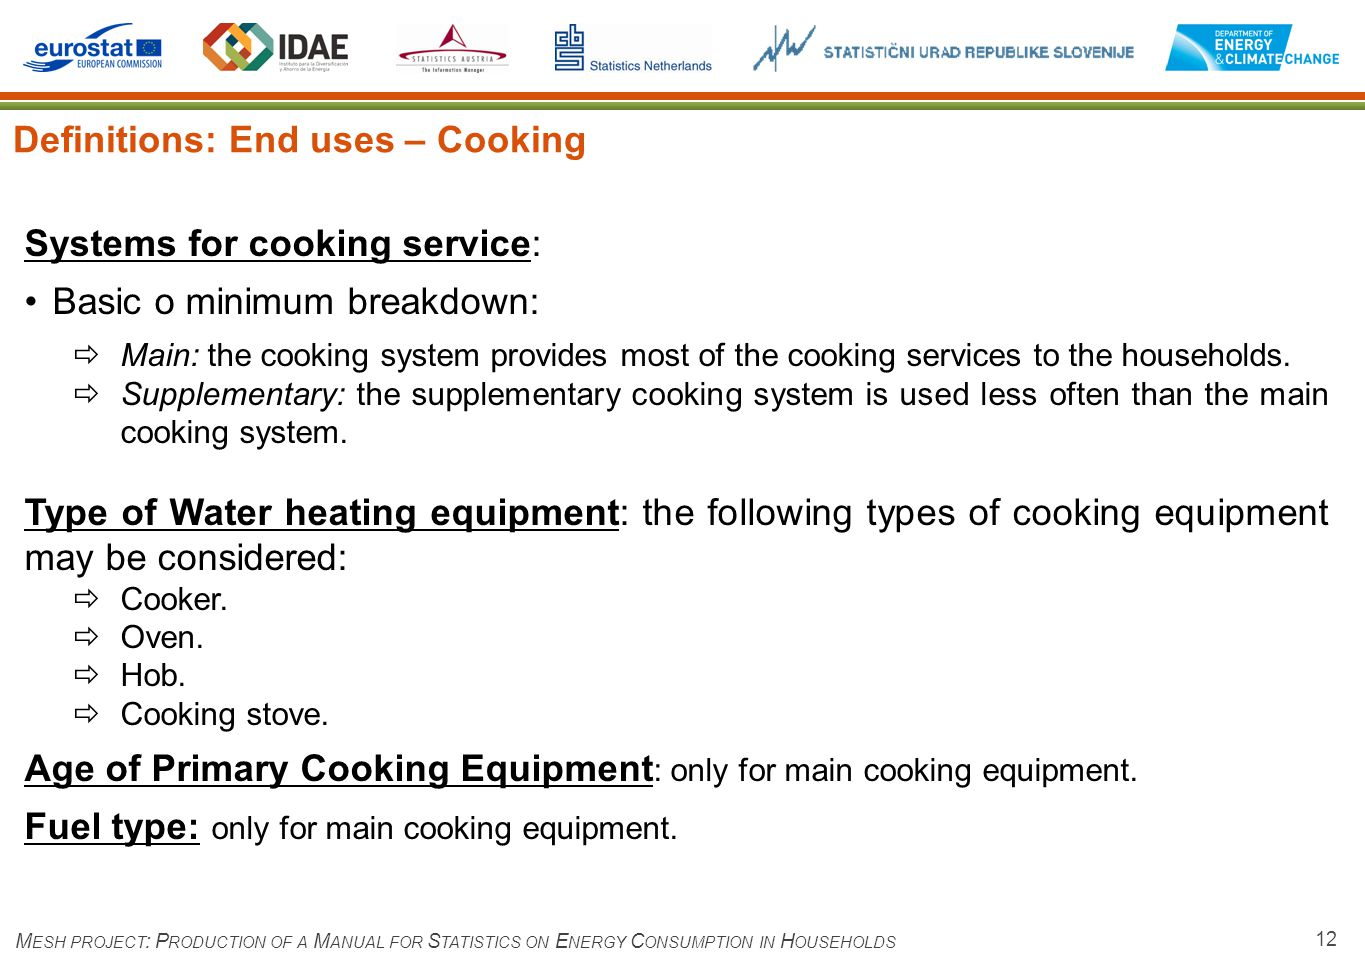 12 Definitions: End uses – Cooking M ESH PROJECT : P RODUCTION OF A M ANUAL FOR S TATISTICS ON E NERGY C ONSUMPTION IN H OUSEHOLDS Systems for cooking service: Basic o minimum breakdown: Main: the cooking system provides most of the cooking services to the households.